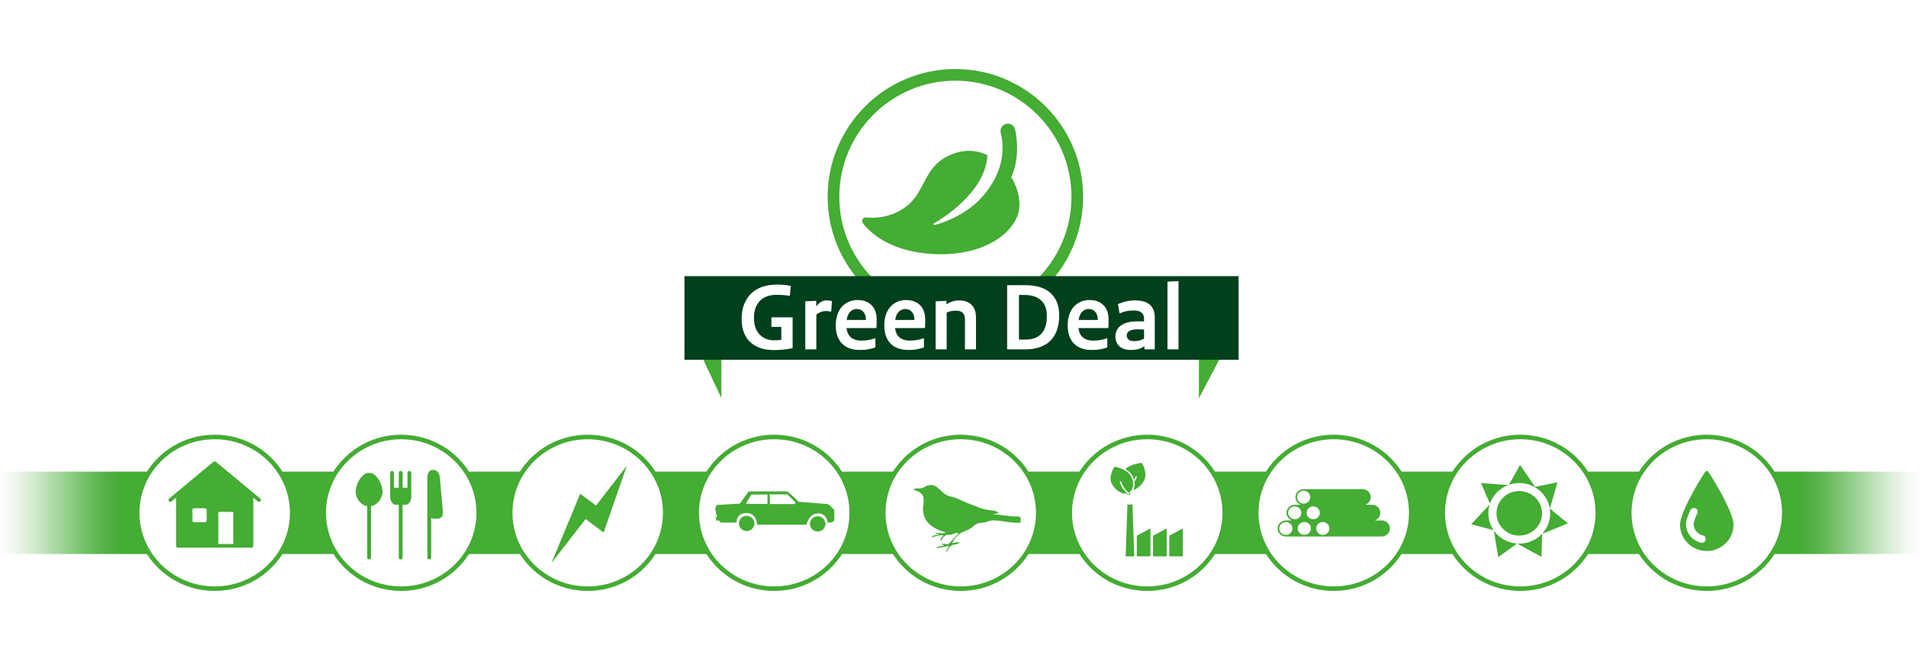 green-deal-header1